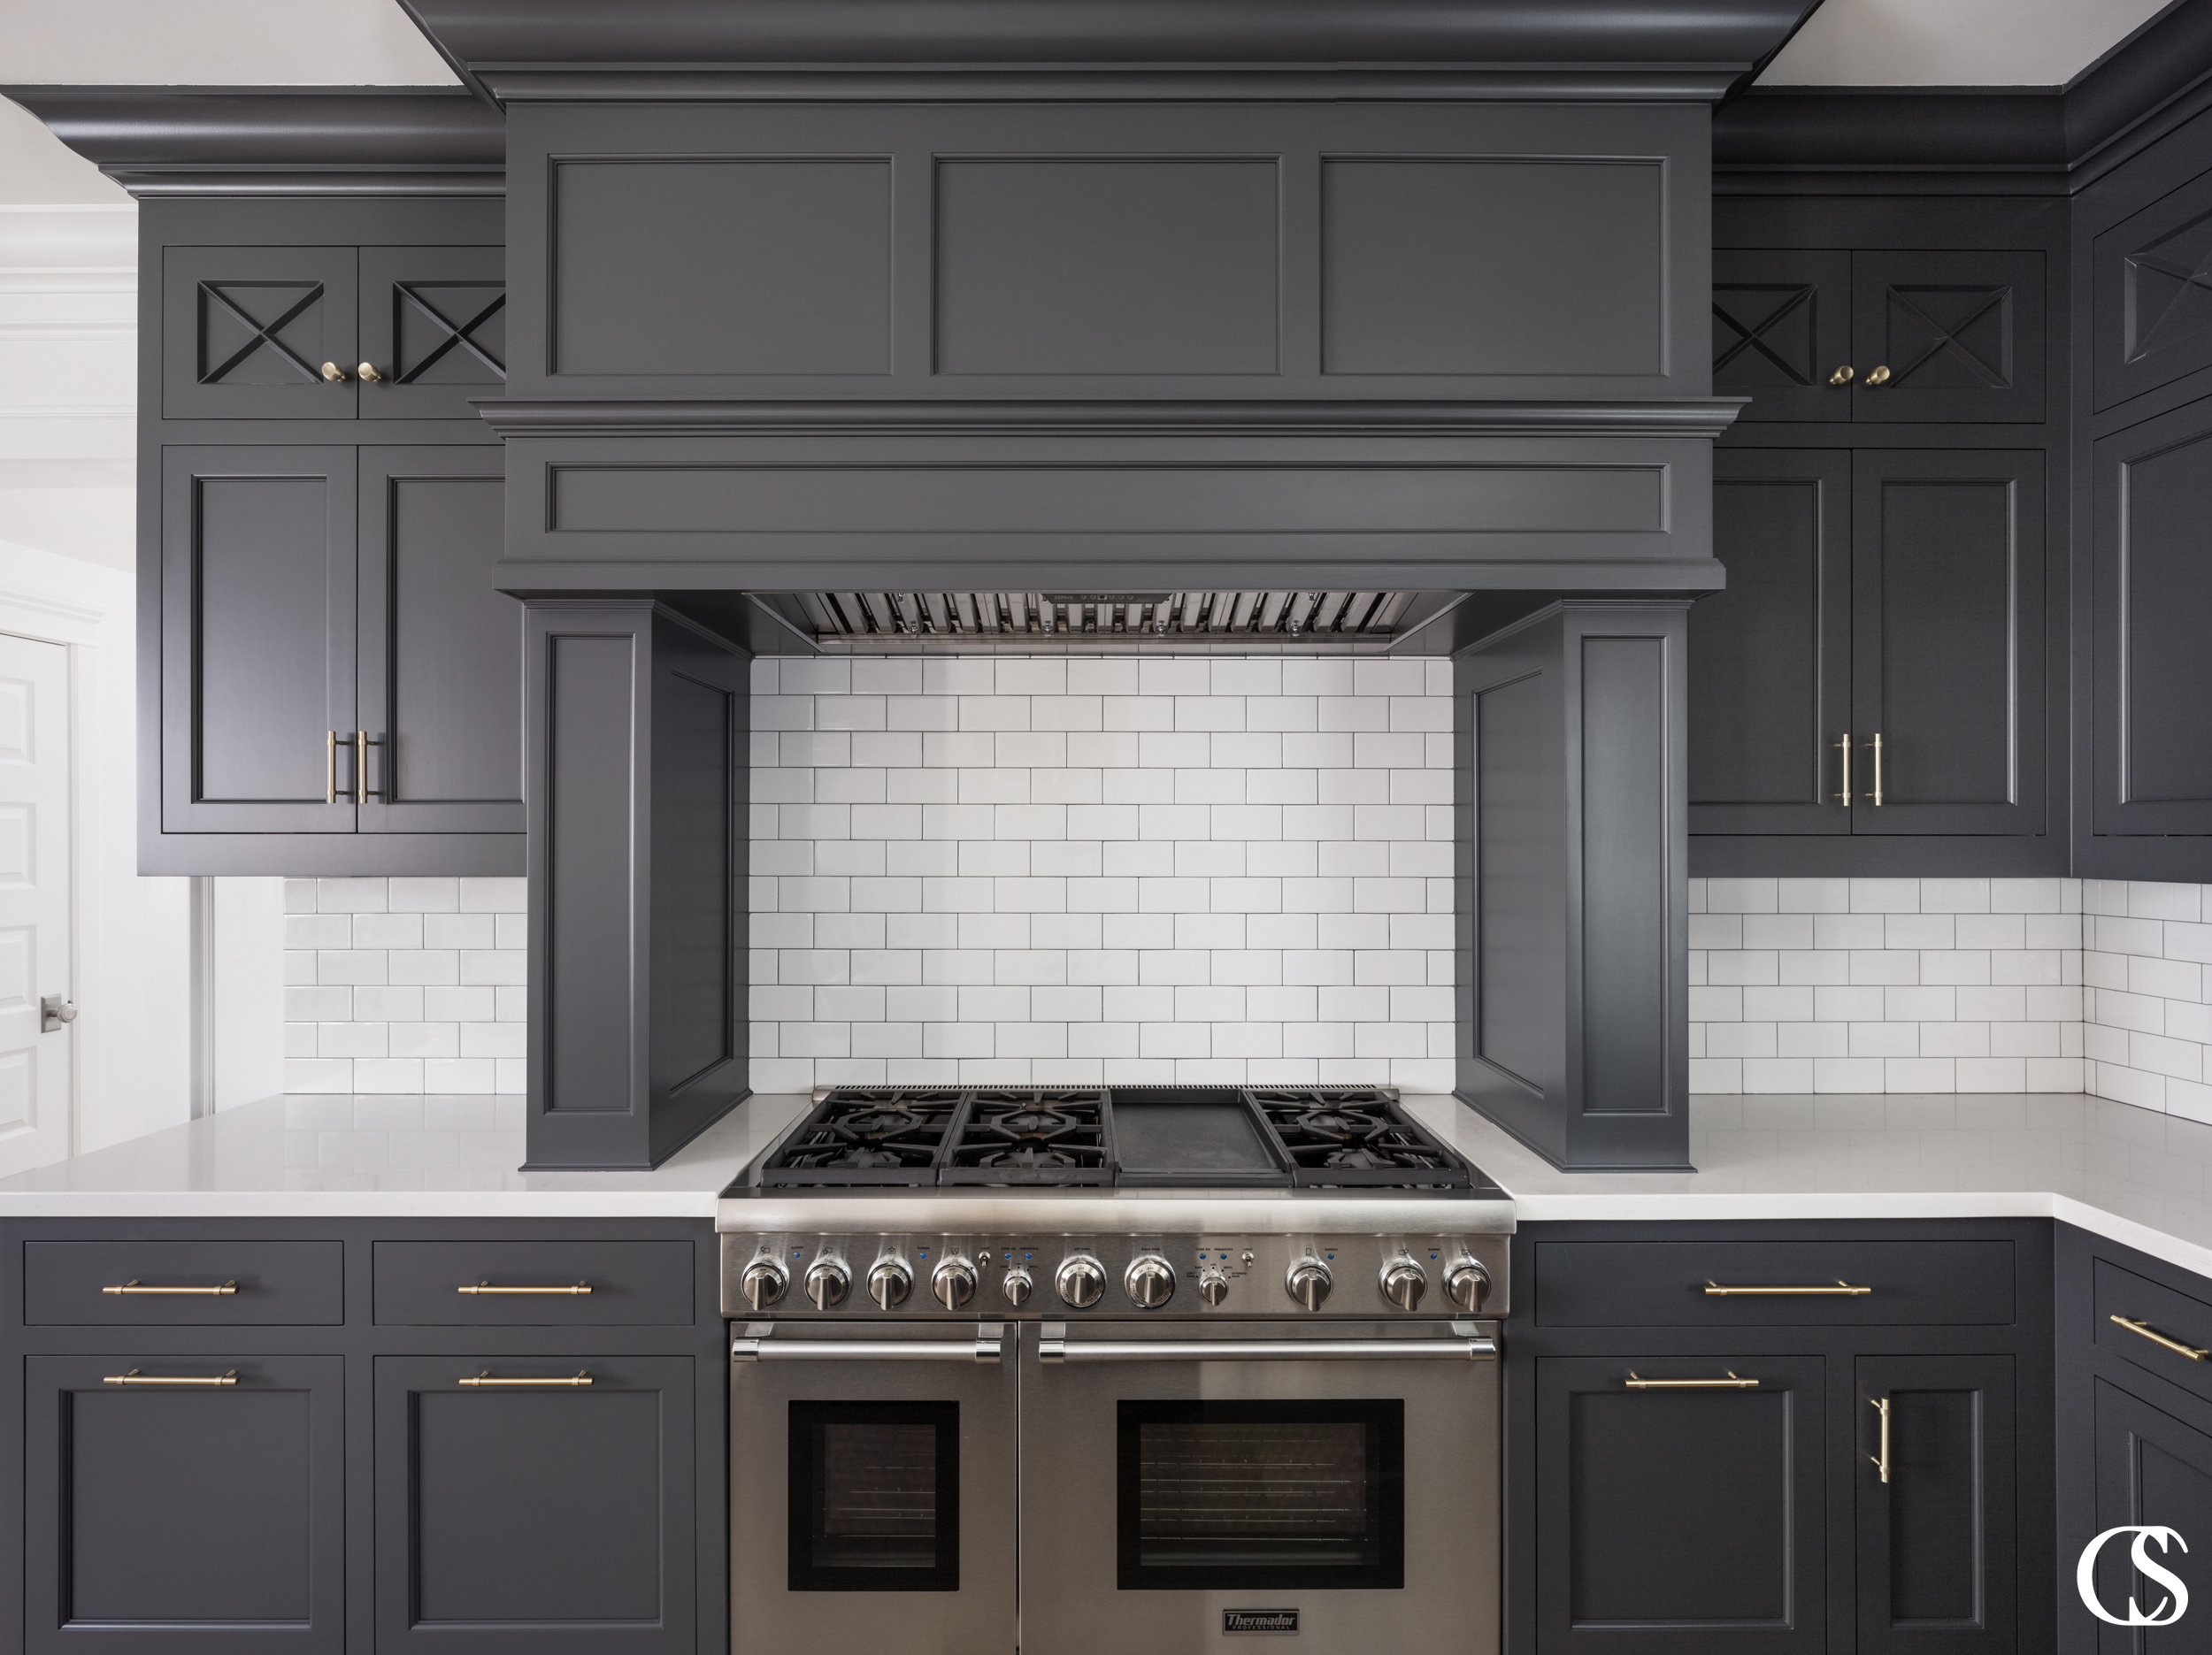 Adding a hood to your custom cabinet design completes the look in your kitchen in a way no store-bought piece ever could.